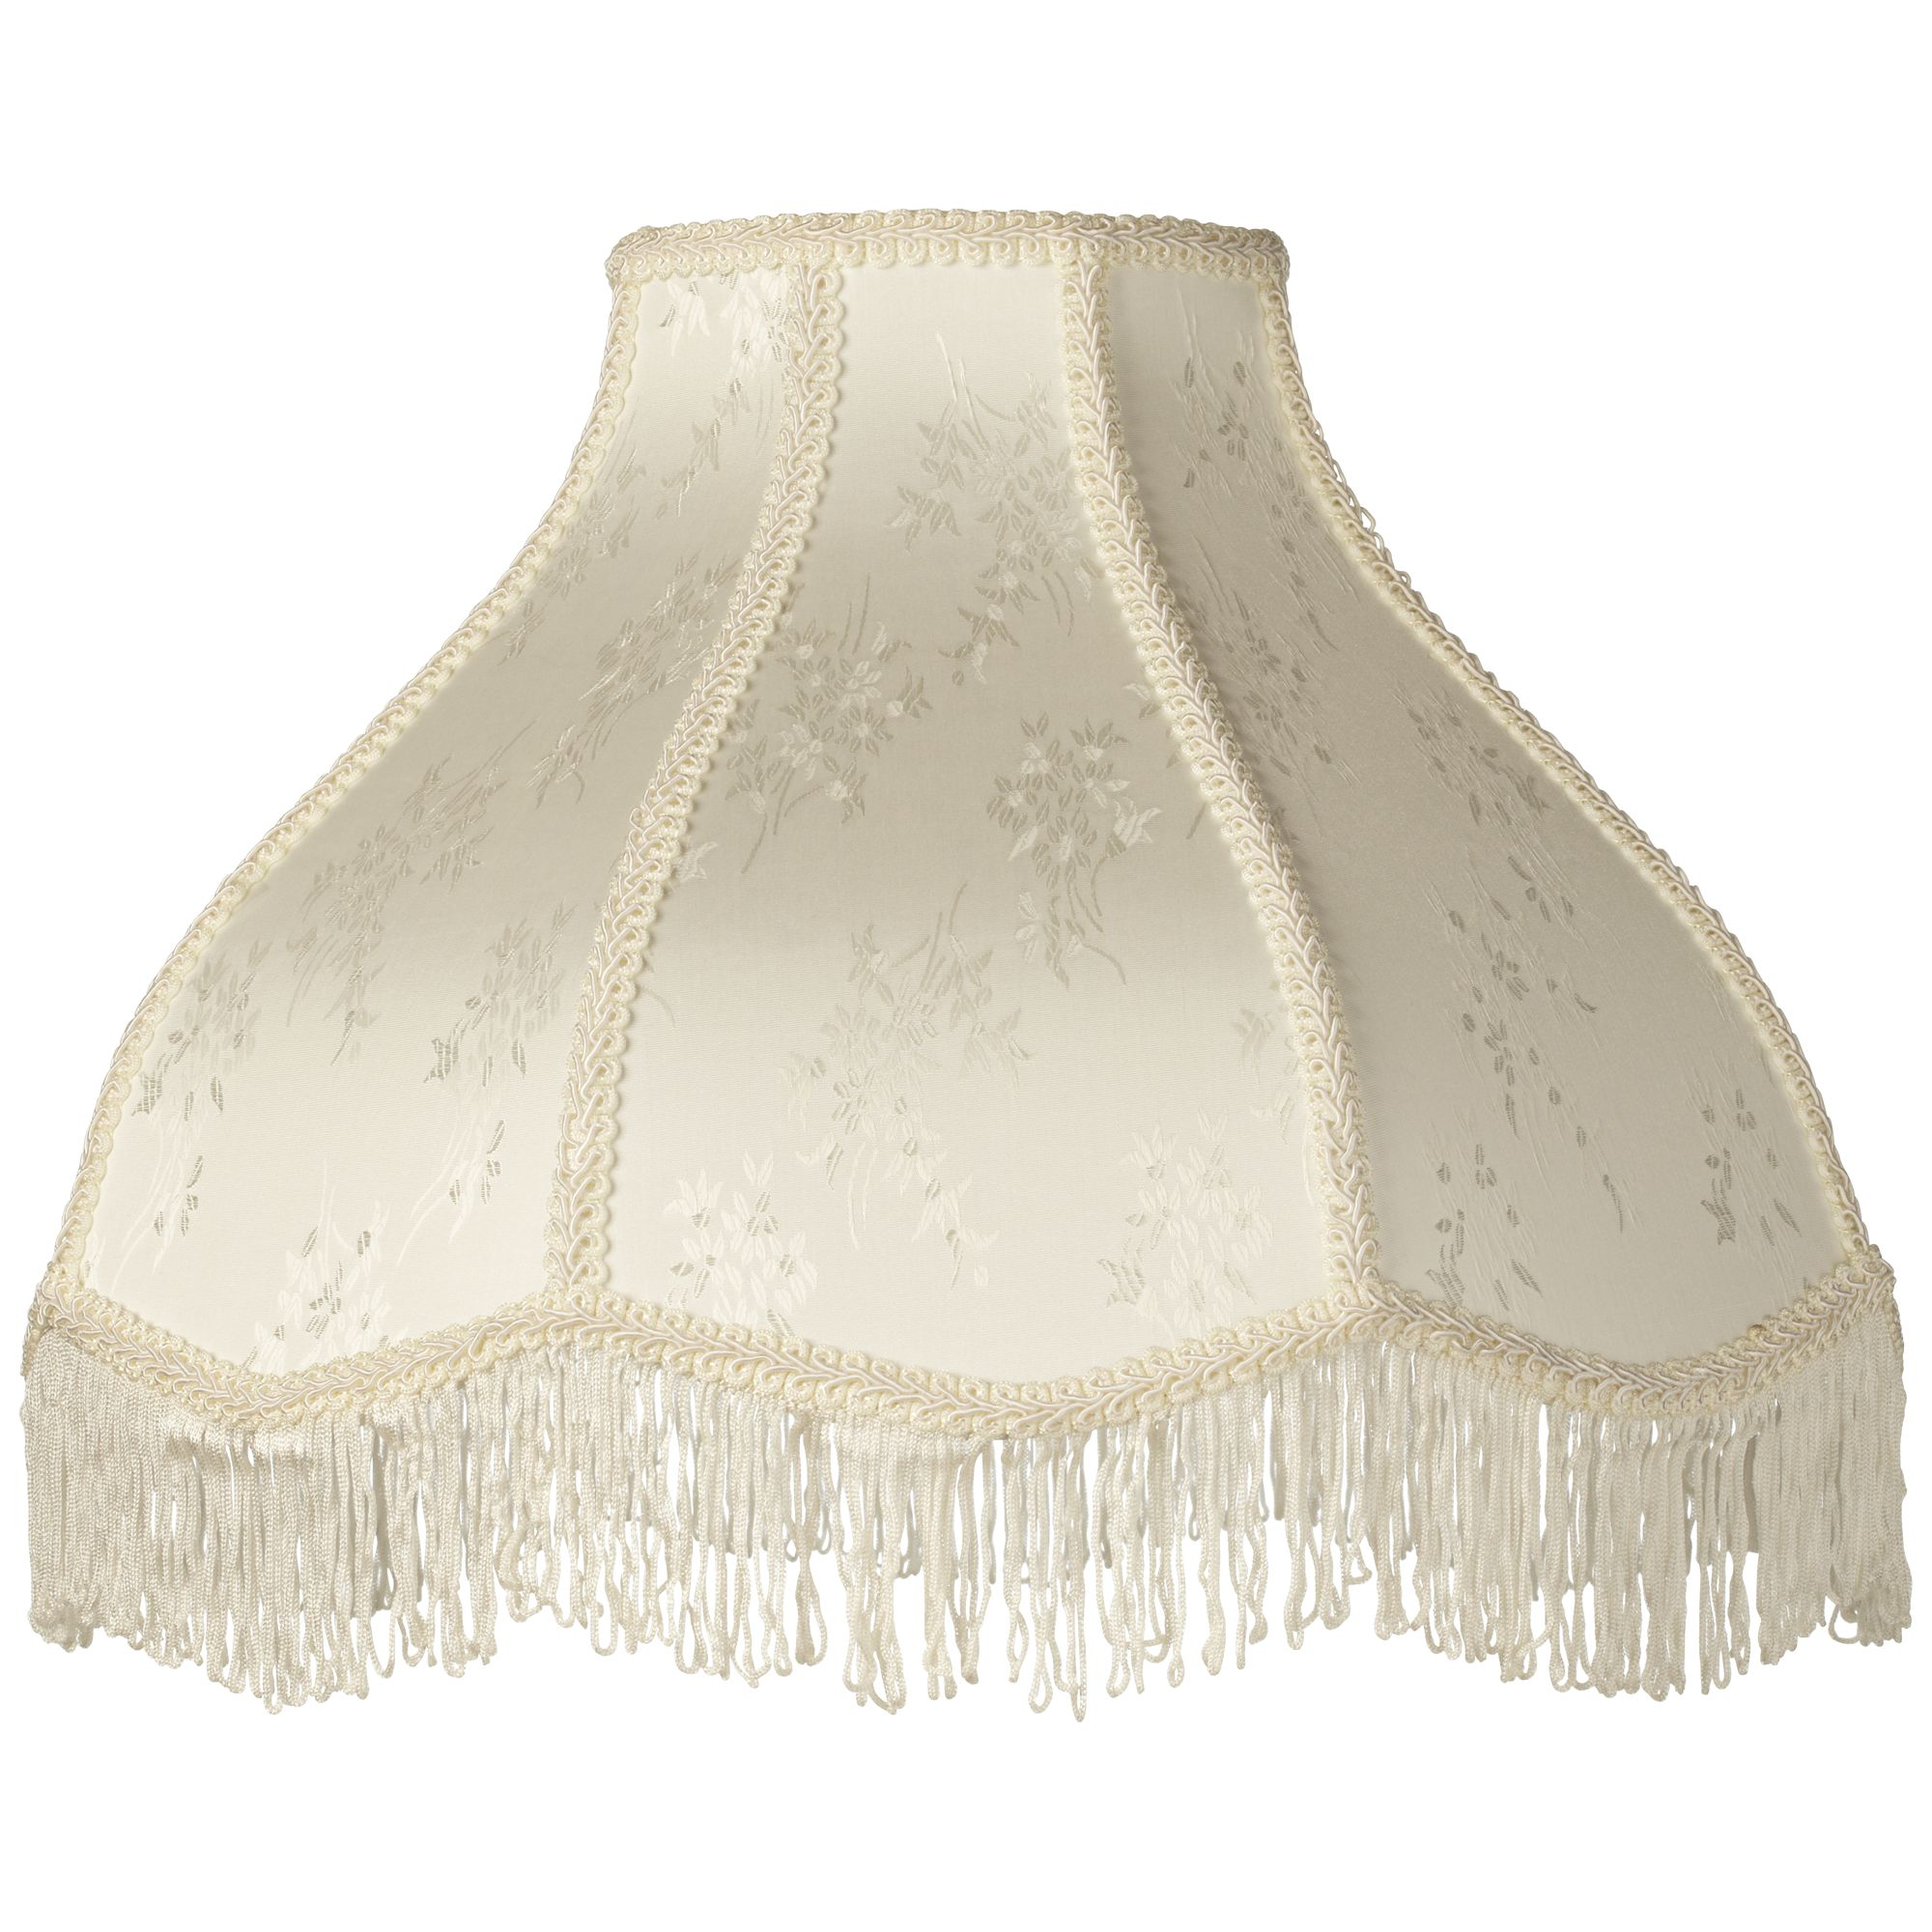 Brentwood Creme Scallop Lamp Shade Fringe Harp Included 6x17x12x11 - Spider